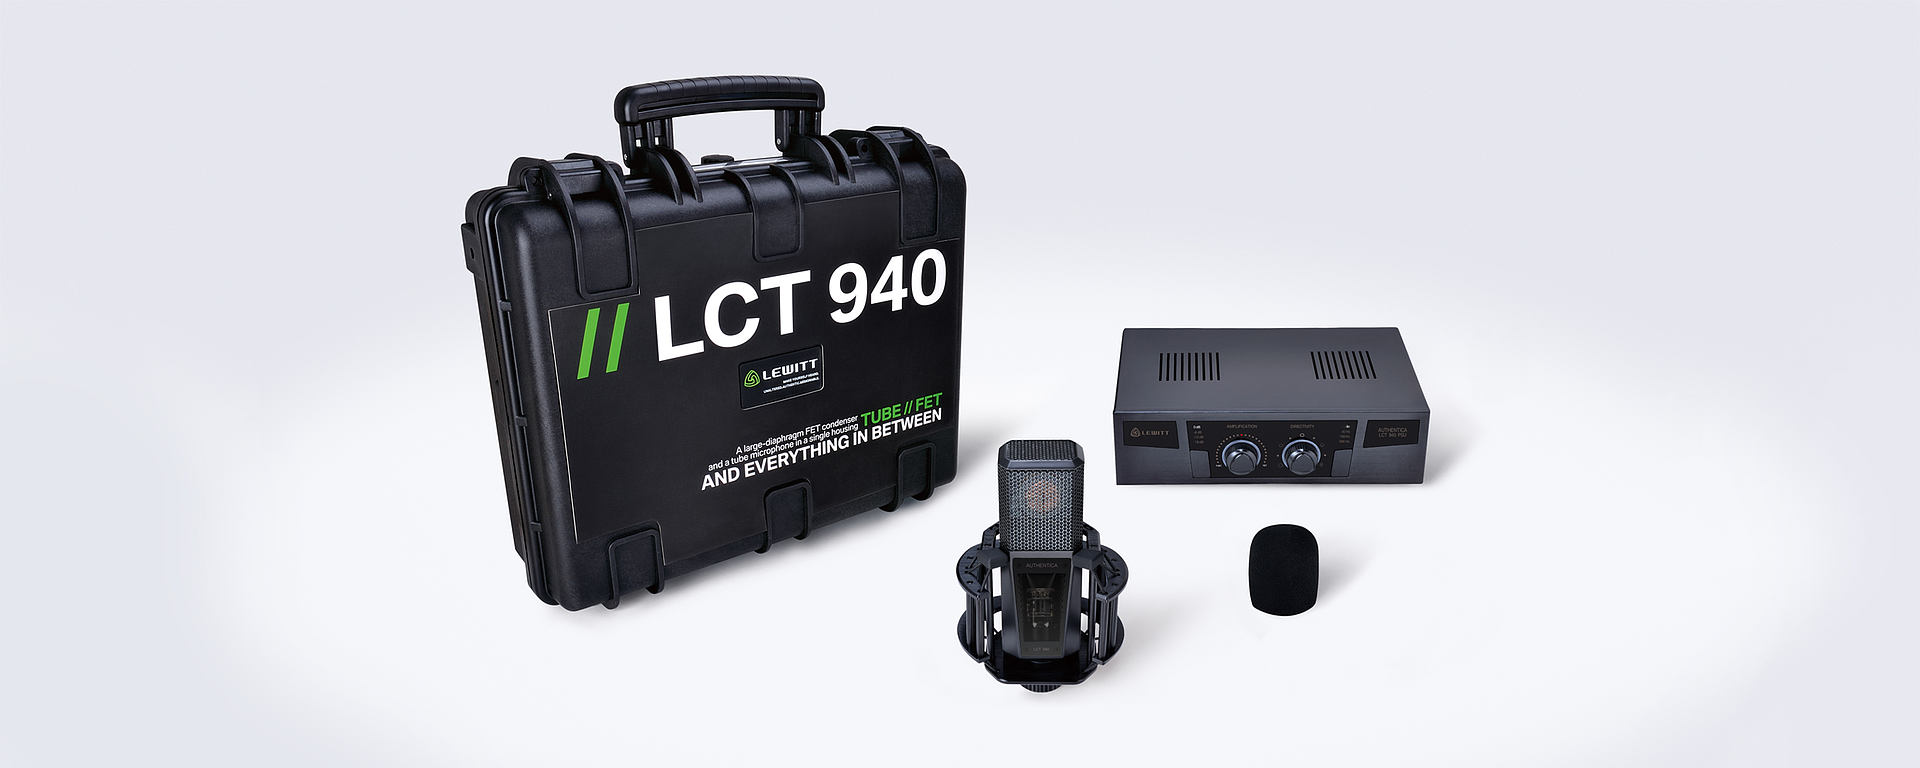 LCT 940 Box contents